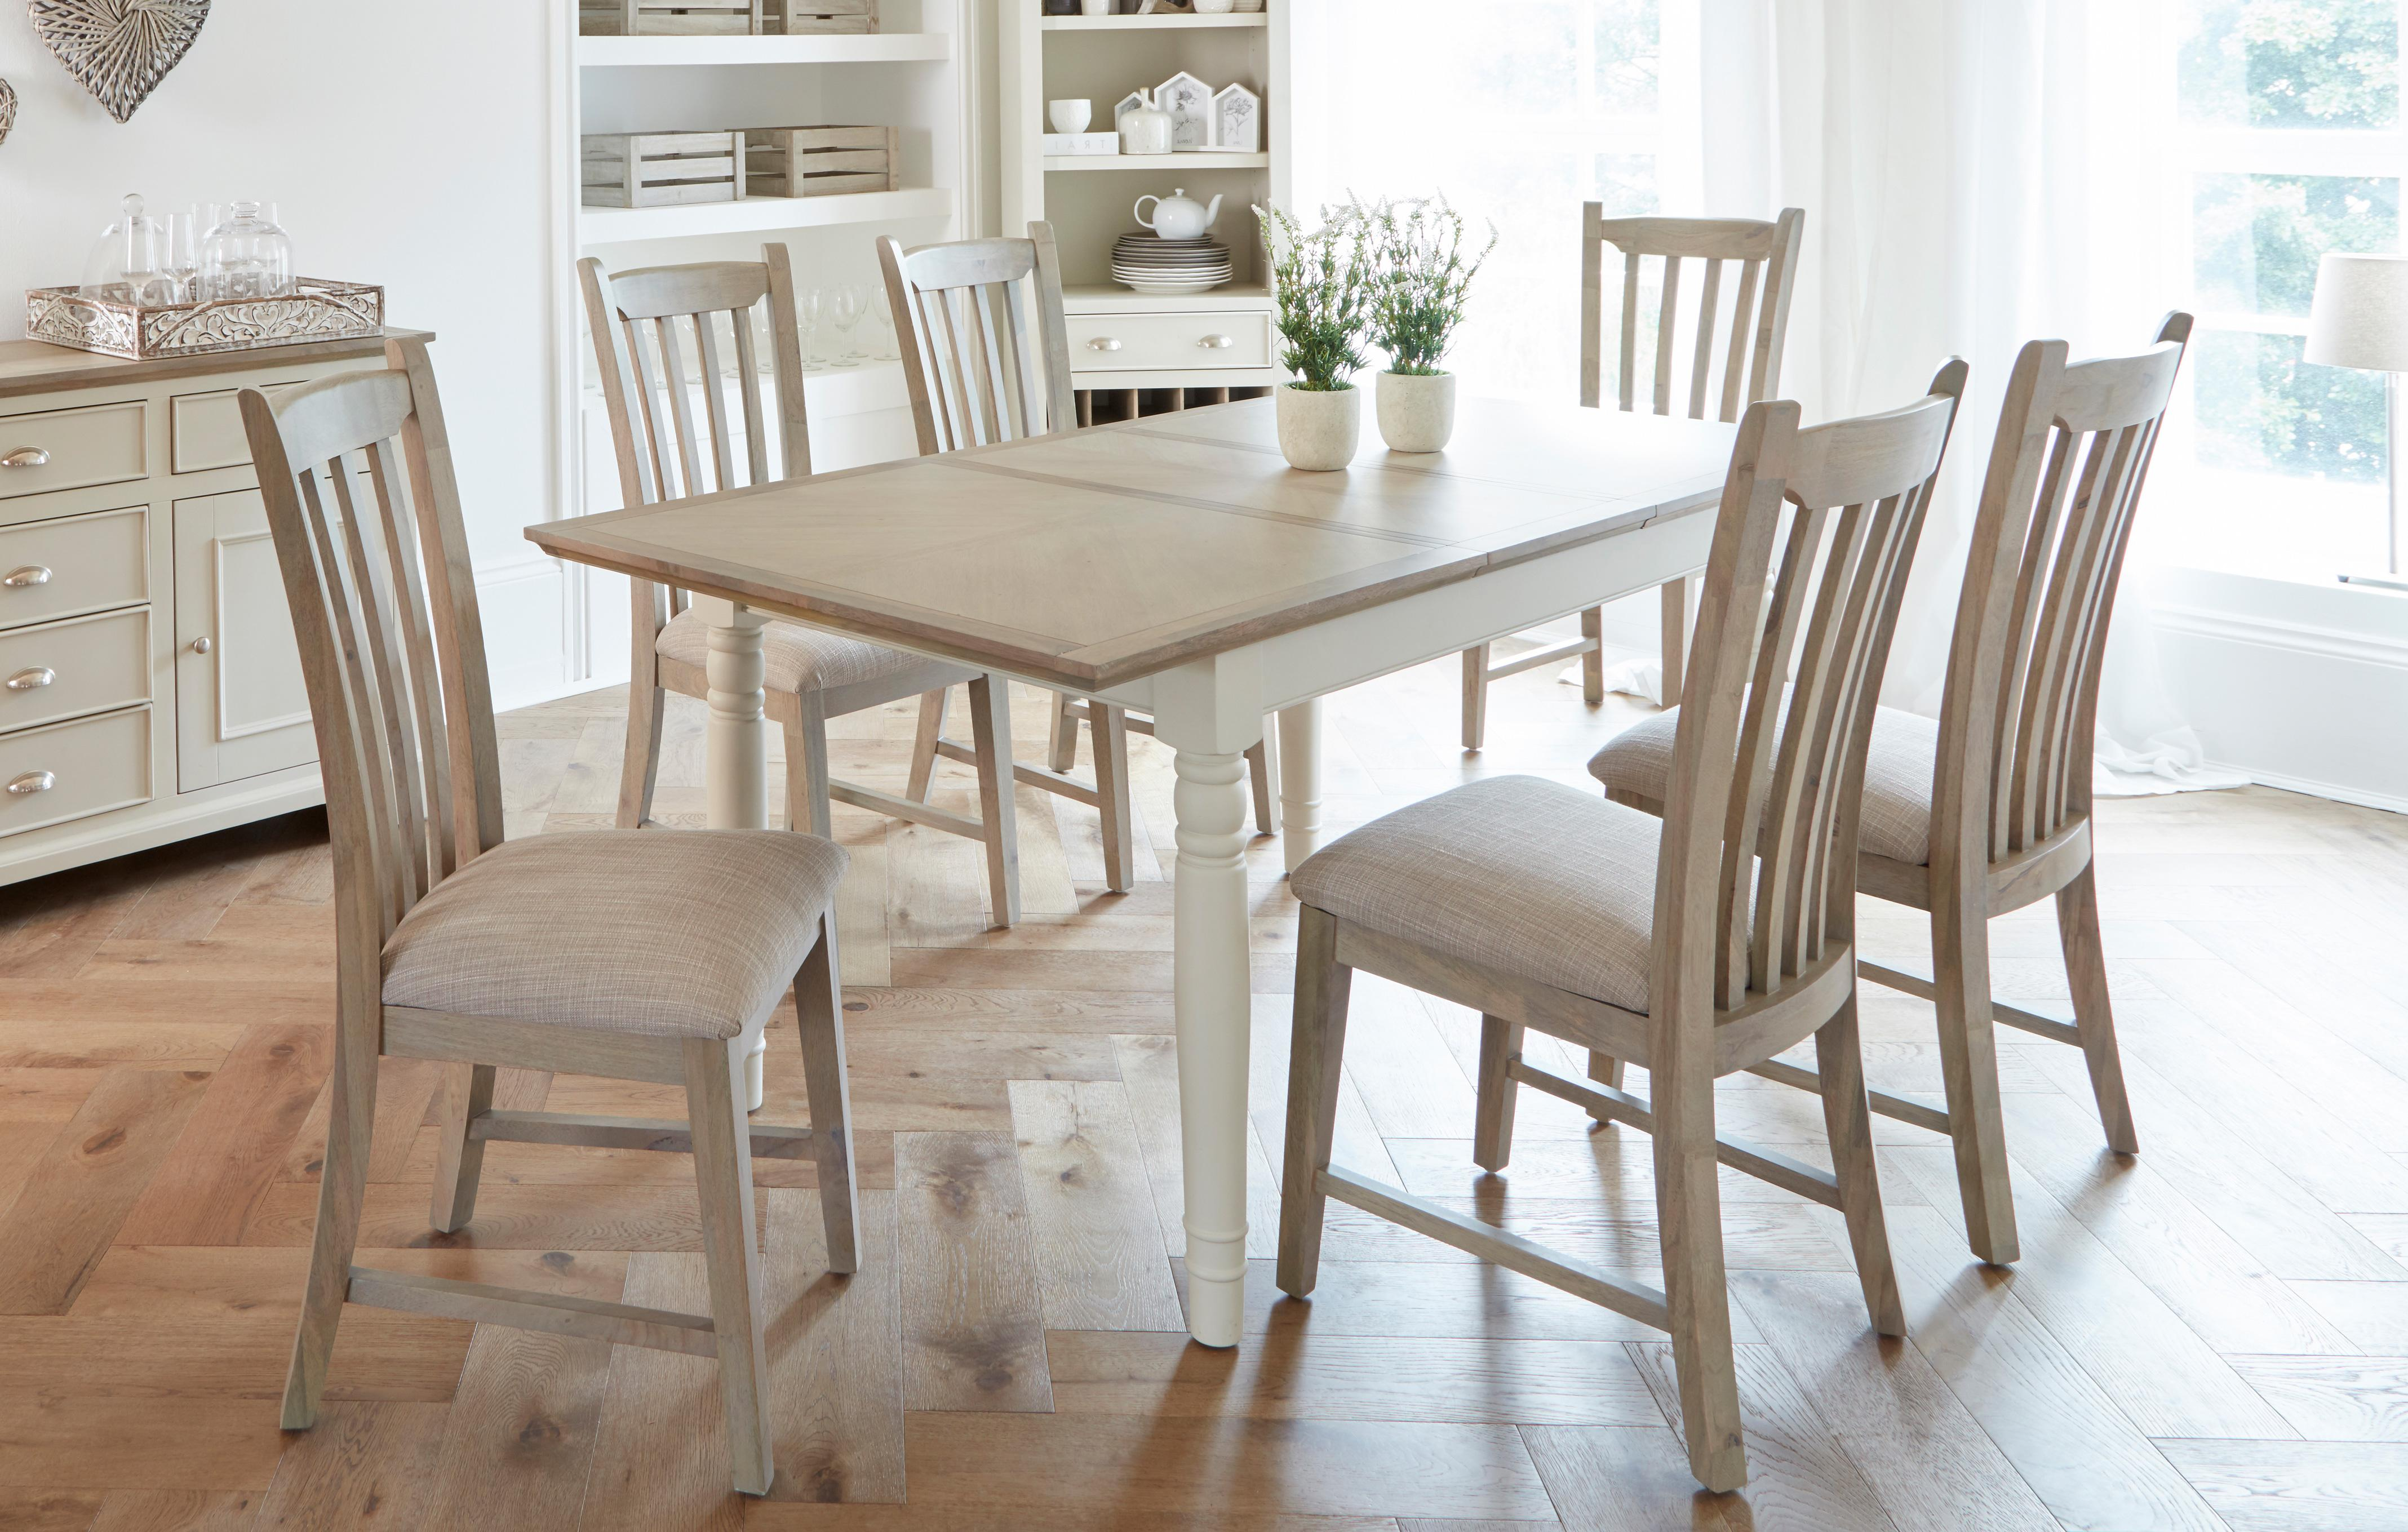 set of 4 dining chairs coleman quad chair tables and see all our sets dfs valencia rectangular extending table with fabric seat pad